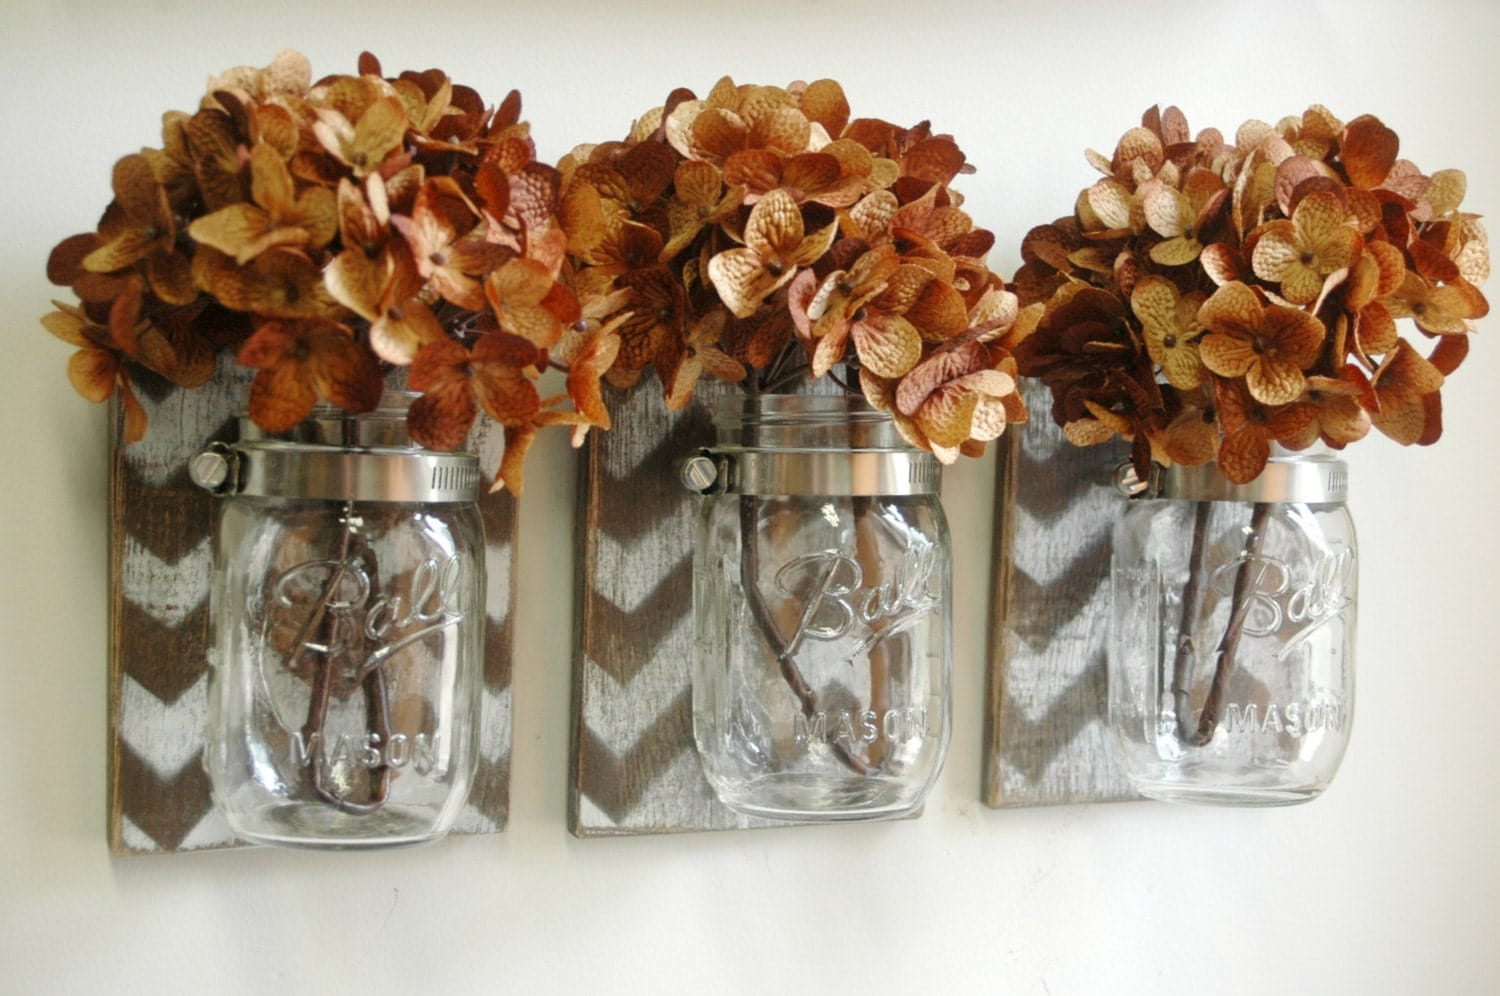 Chevron wall decor mason jar farmhouse decor fixer upper for R f bathrooms and kitchens